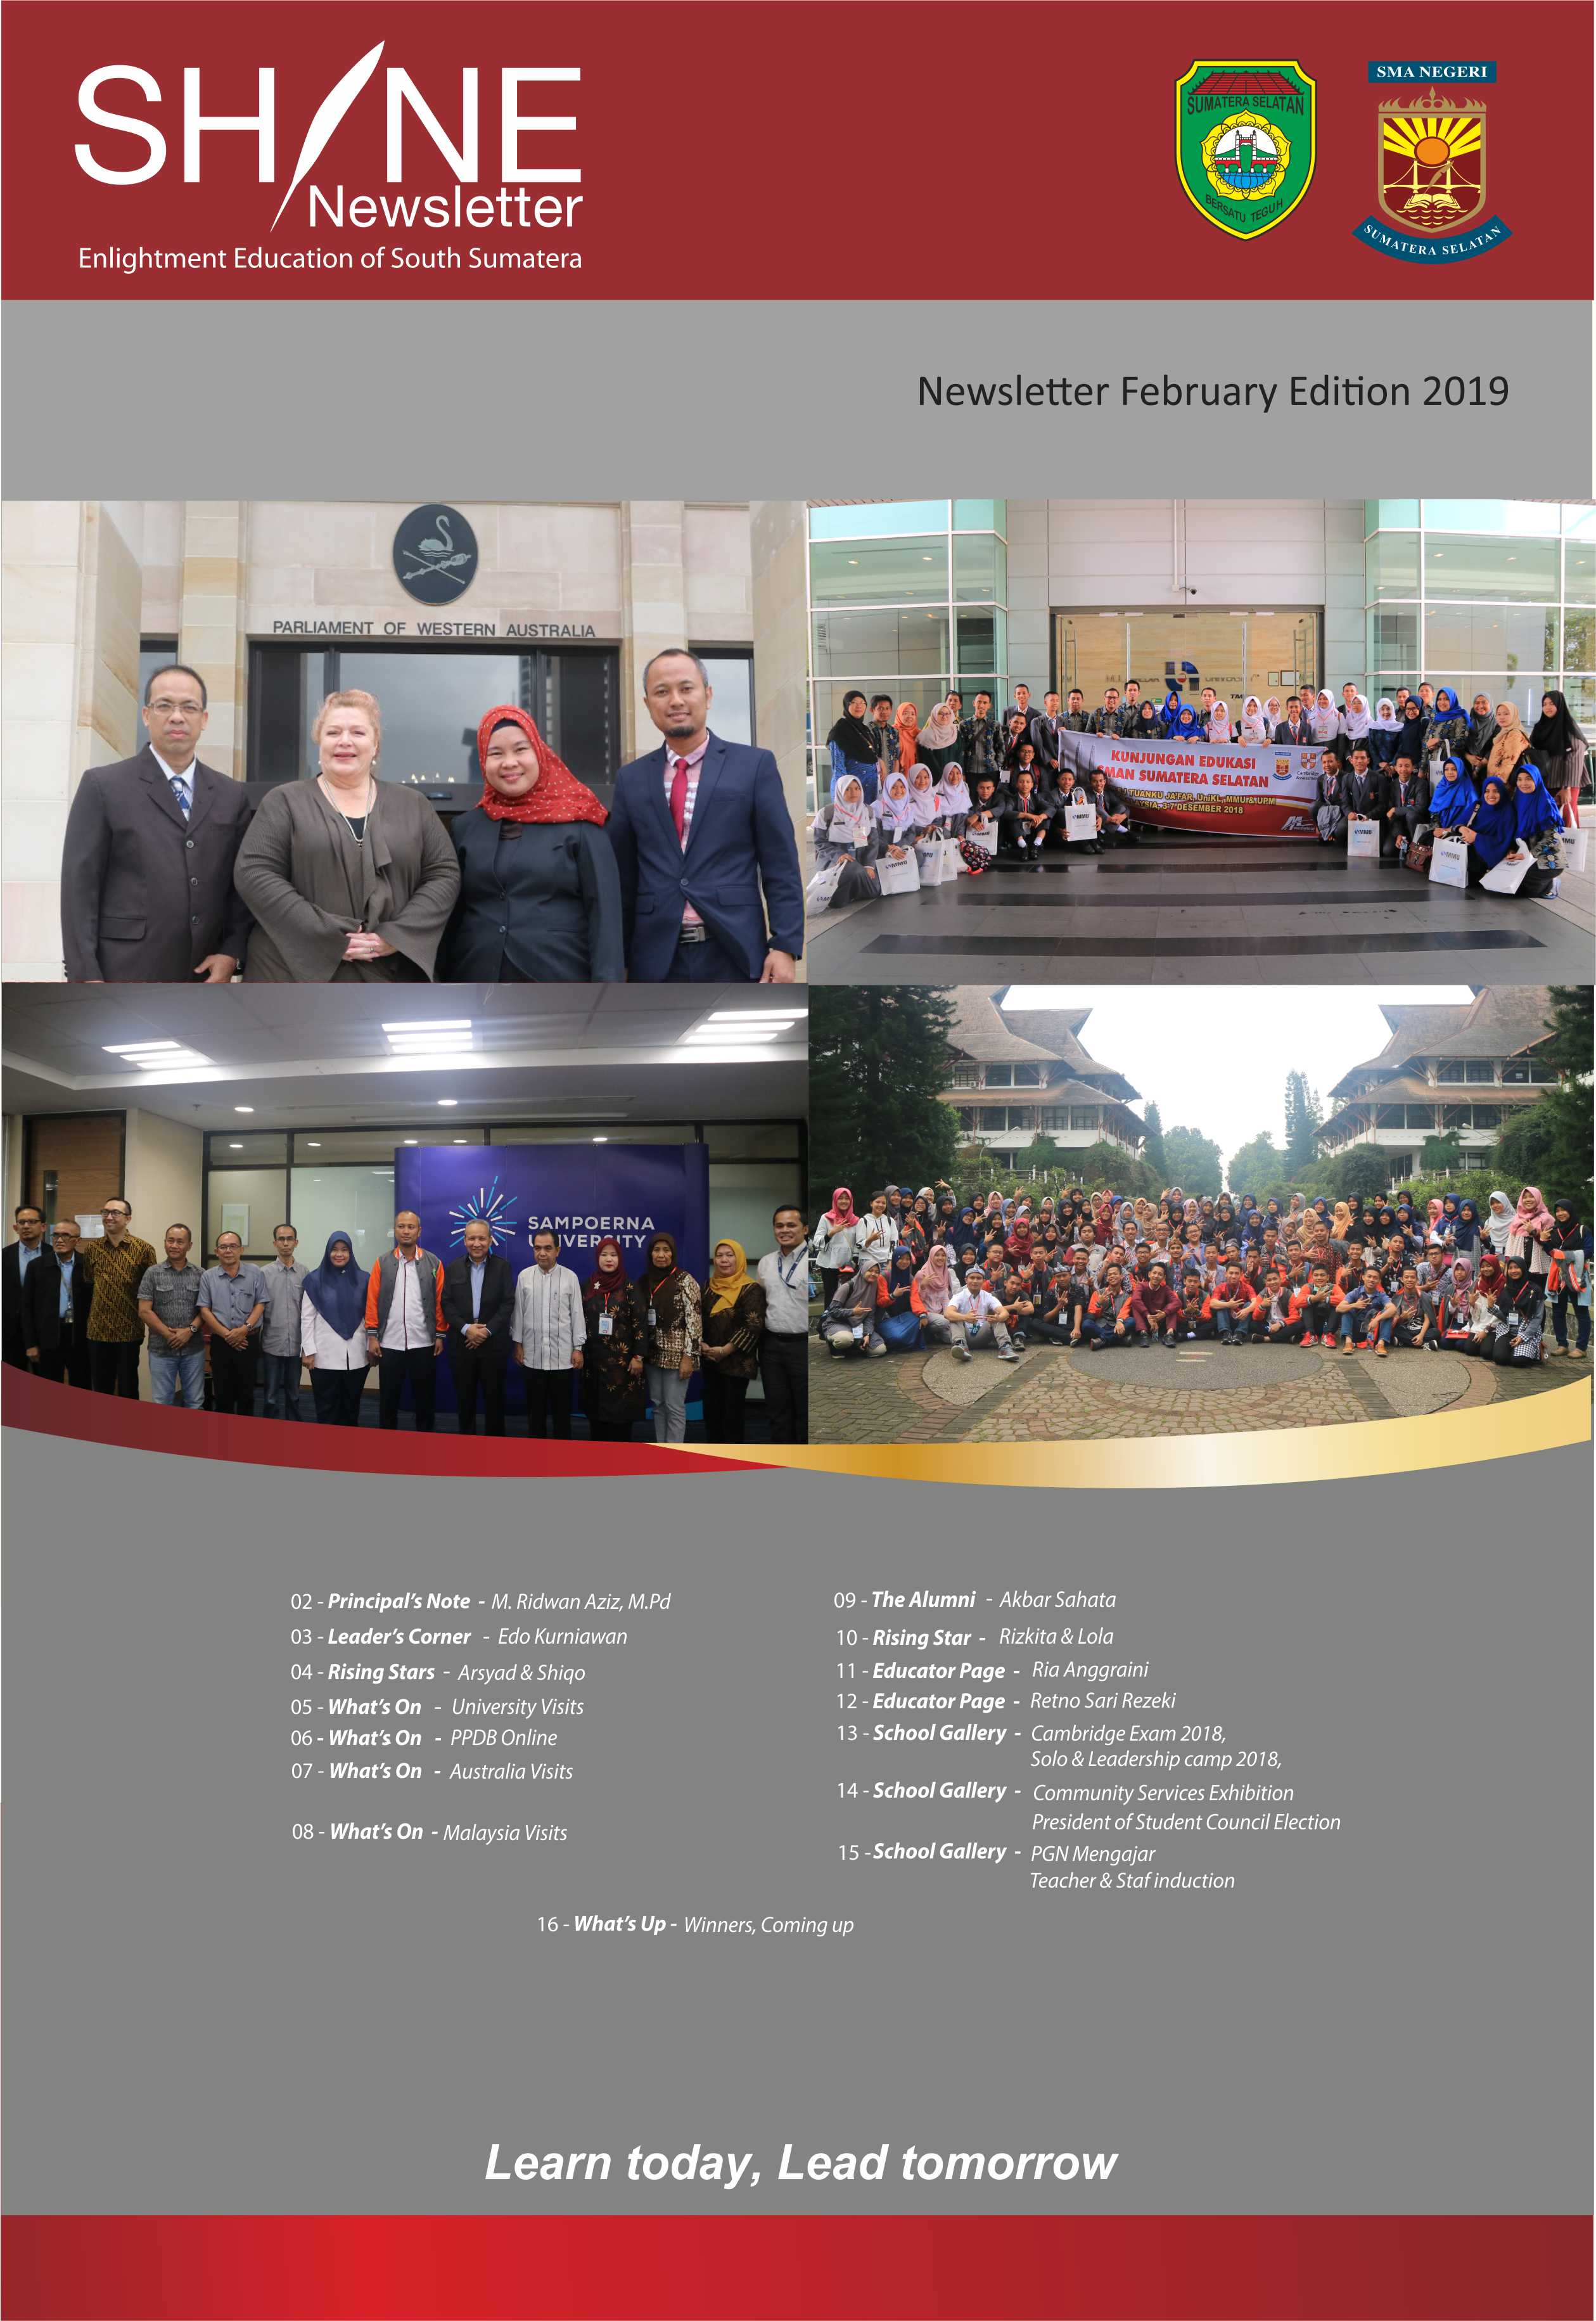 NEWSLETTER 2019 FEBRUARI EDITION